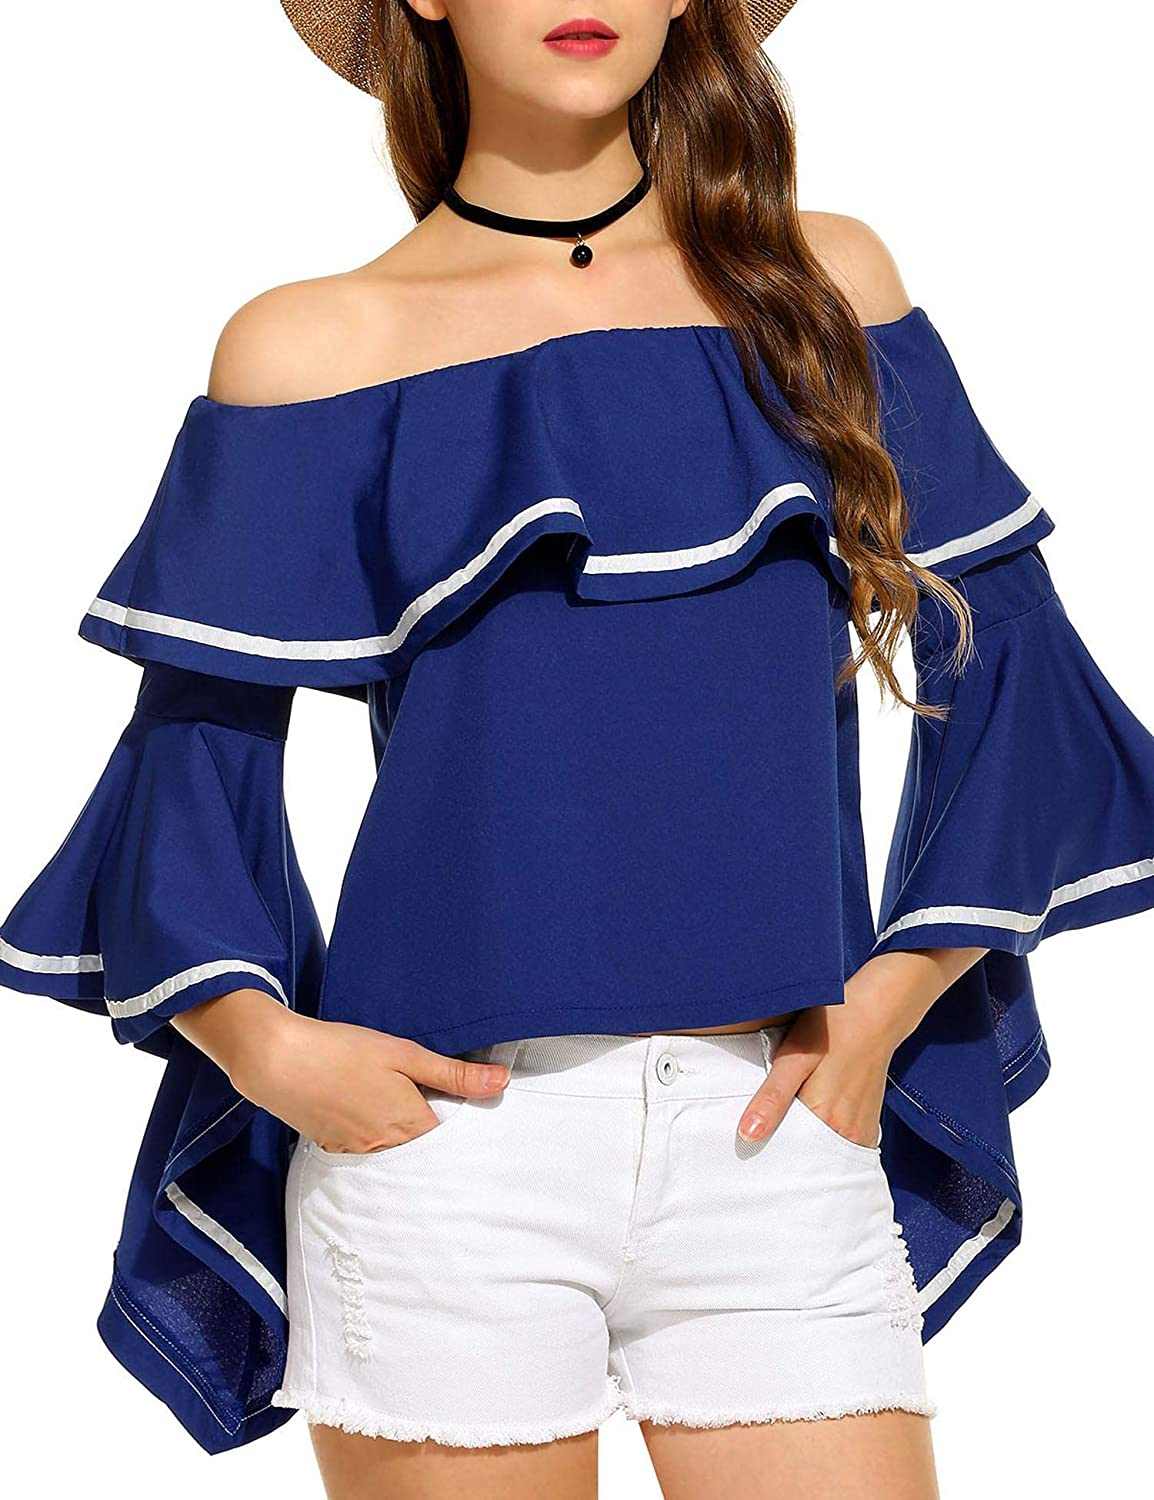 Zeagoo Off The Shoulder Tops Women Bell Sleeve Floral Print Casual Ruffled Sleeve Blouse